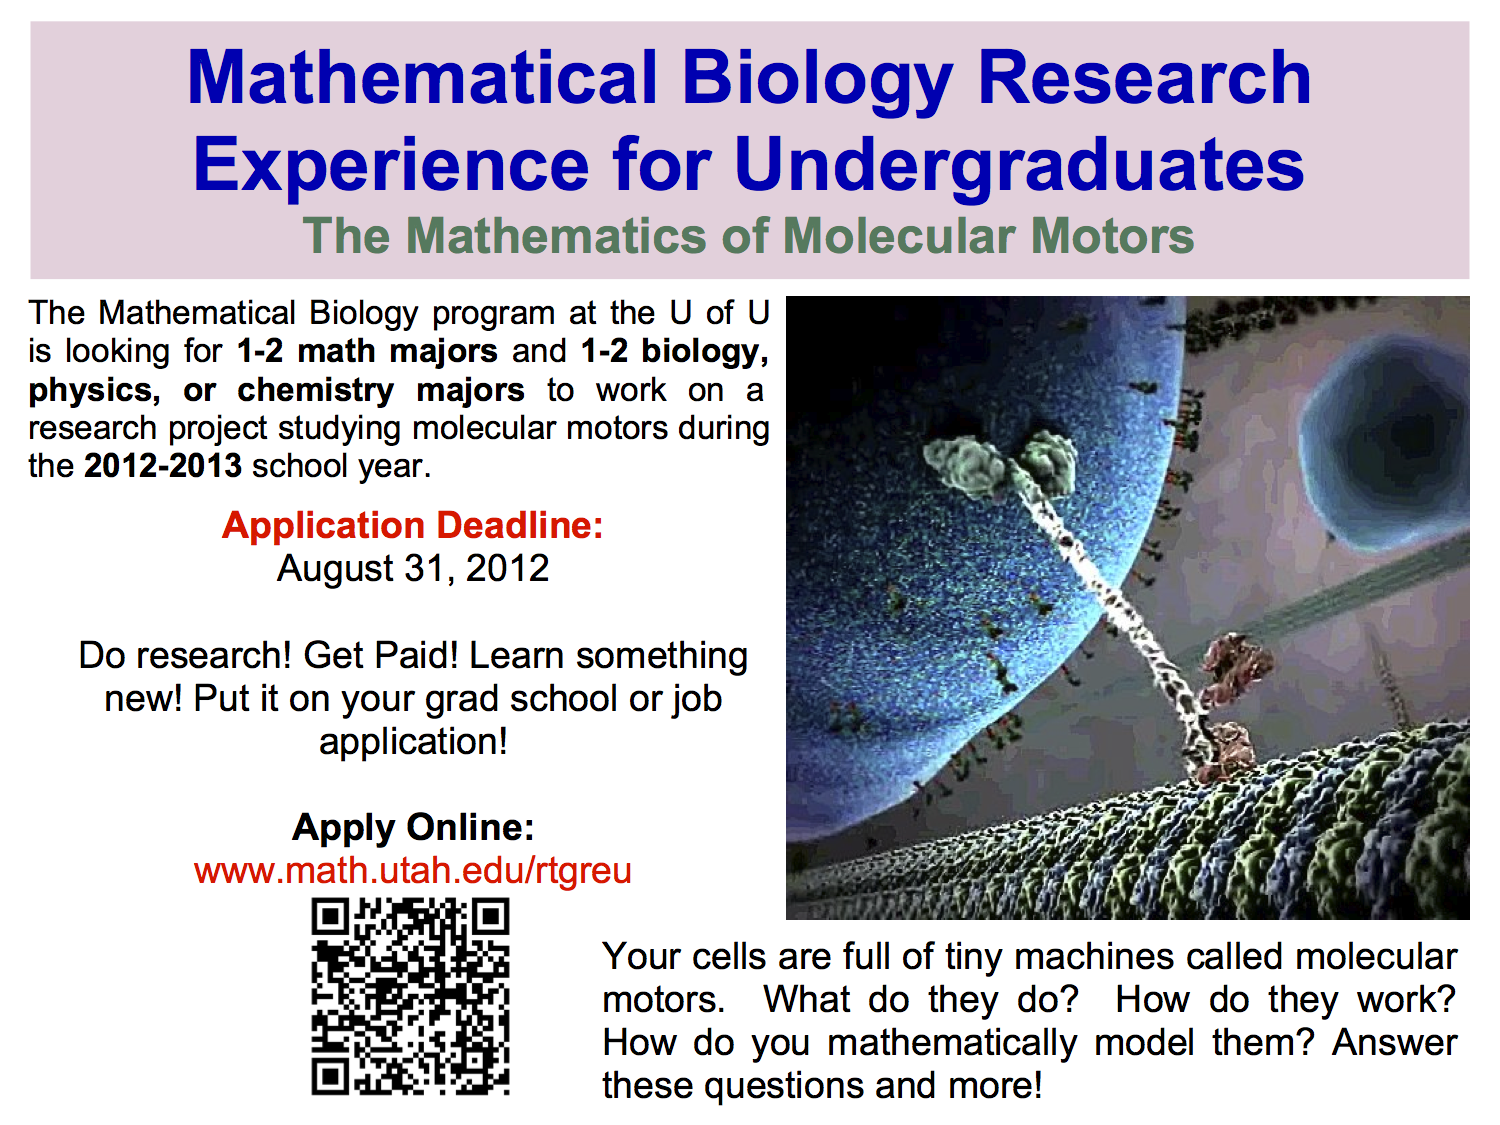 U of U Mathematical Biology RTG REU